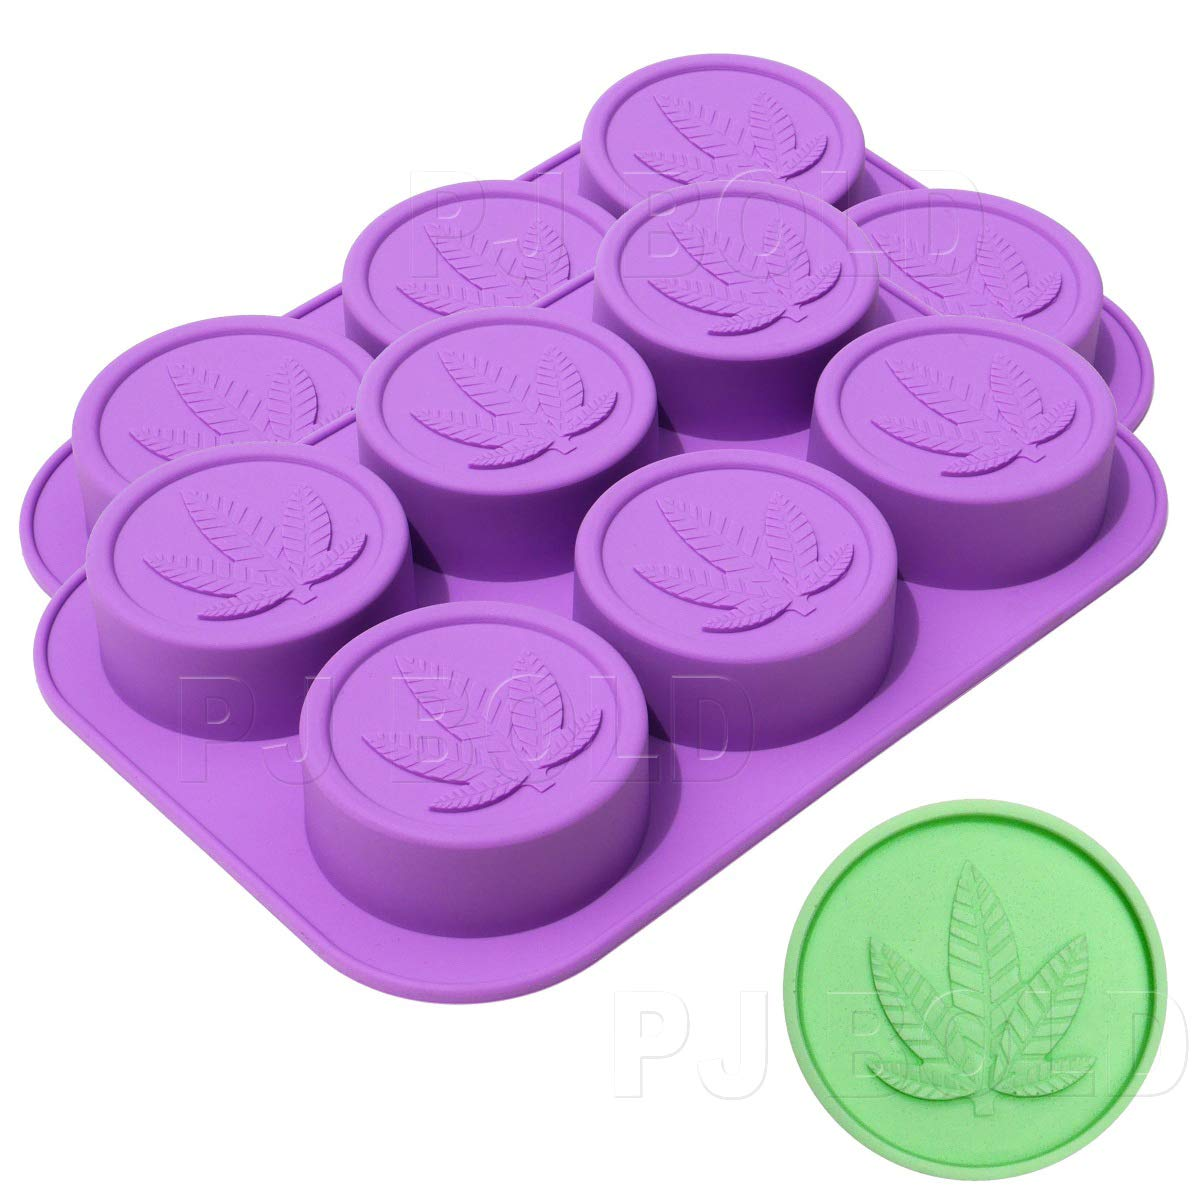 PJ Bold Marijuana Leaf Silicone Soap Butter Candy Mold Tray 2 Pack 12 Cavities Q1051